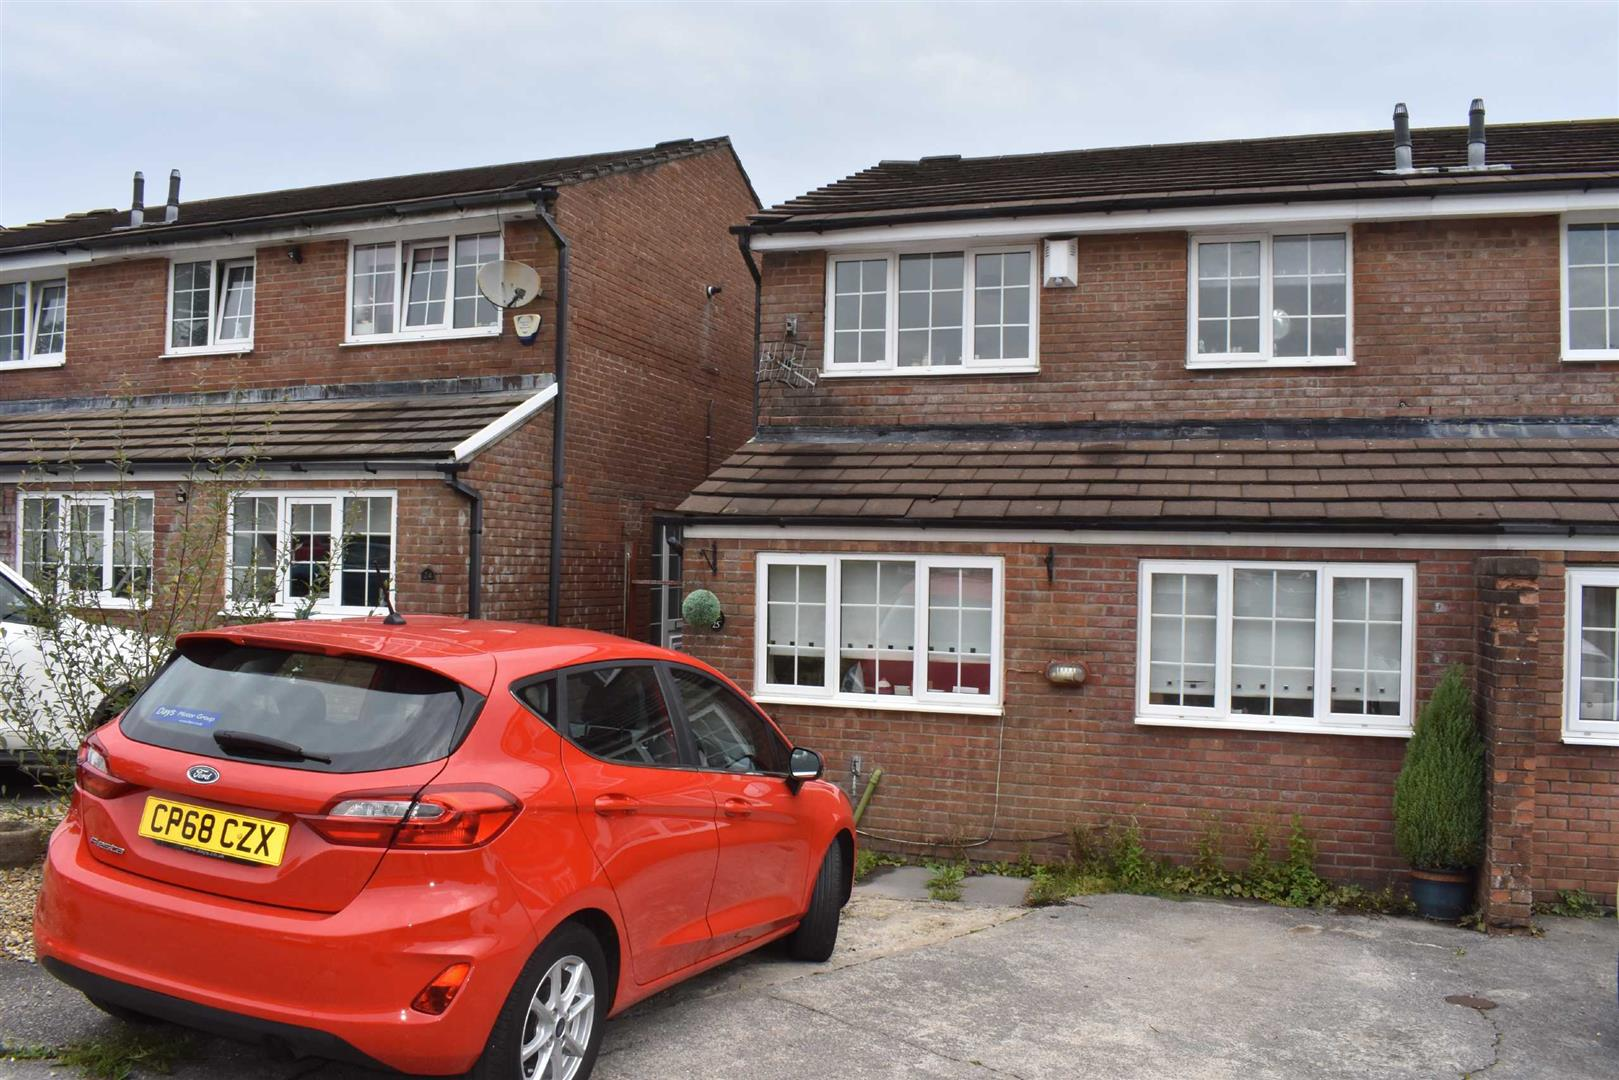 Dale Close, Fforestfach, Swansea, SA5 4NX